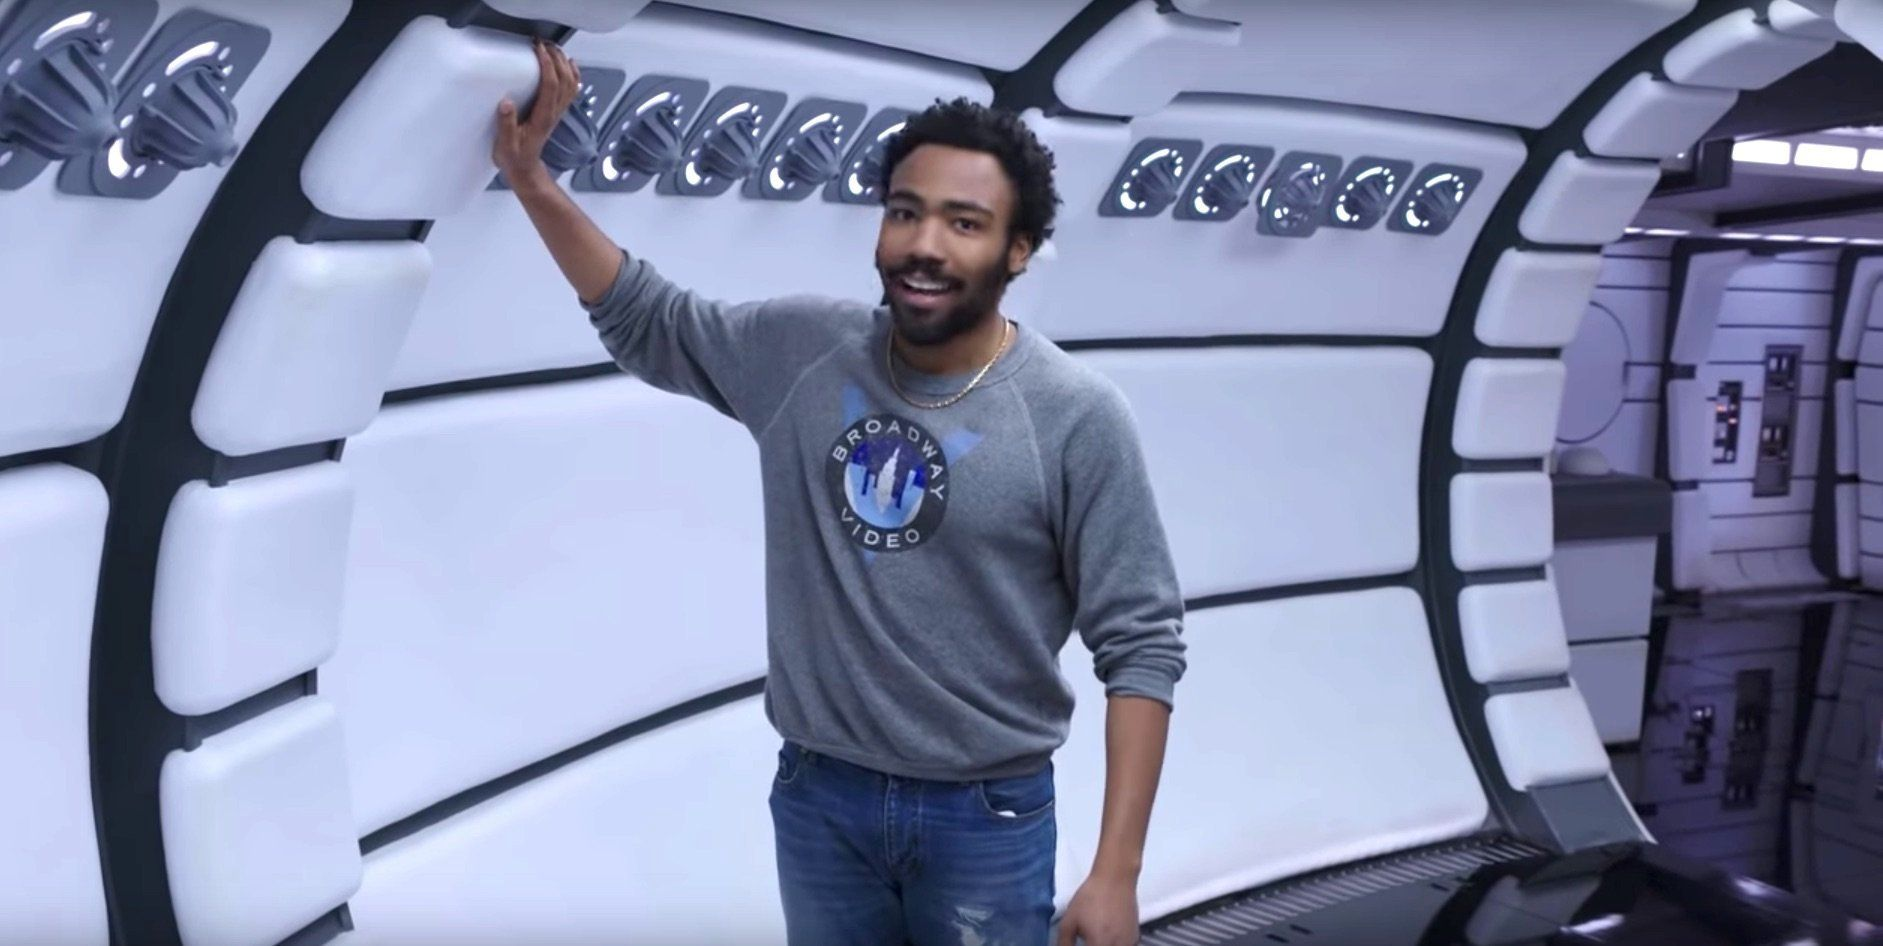 Lando Calrissian's Millennium Falcon Is So Swank It Has A Room Just For